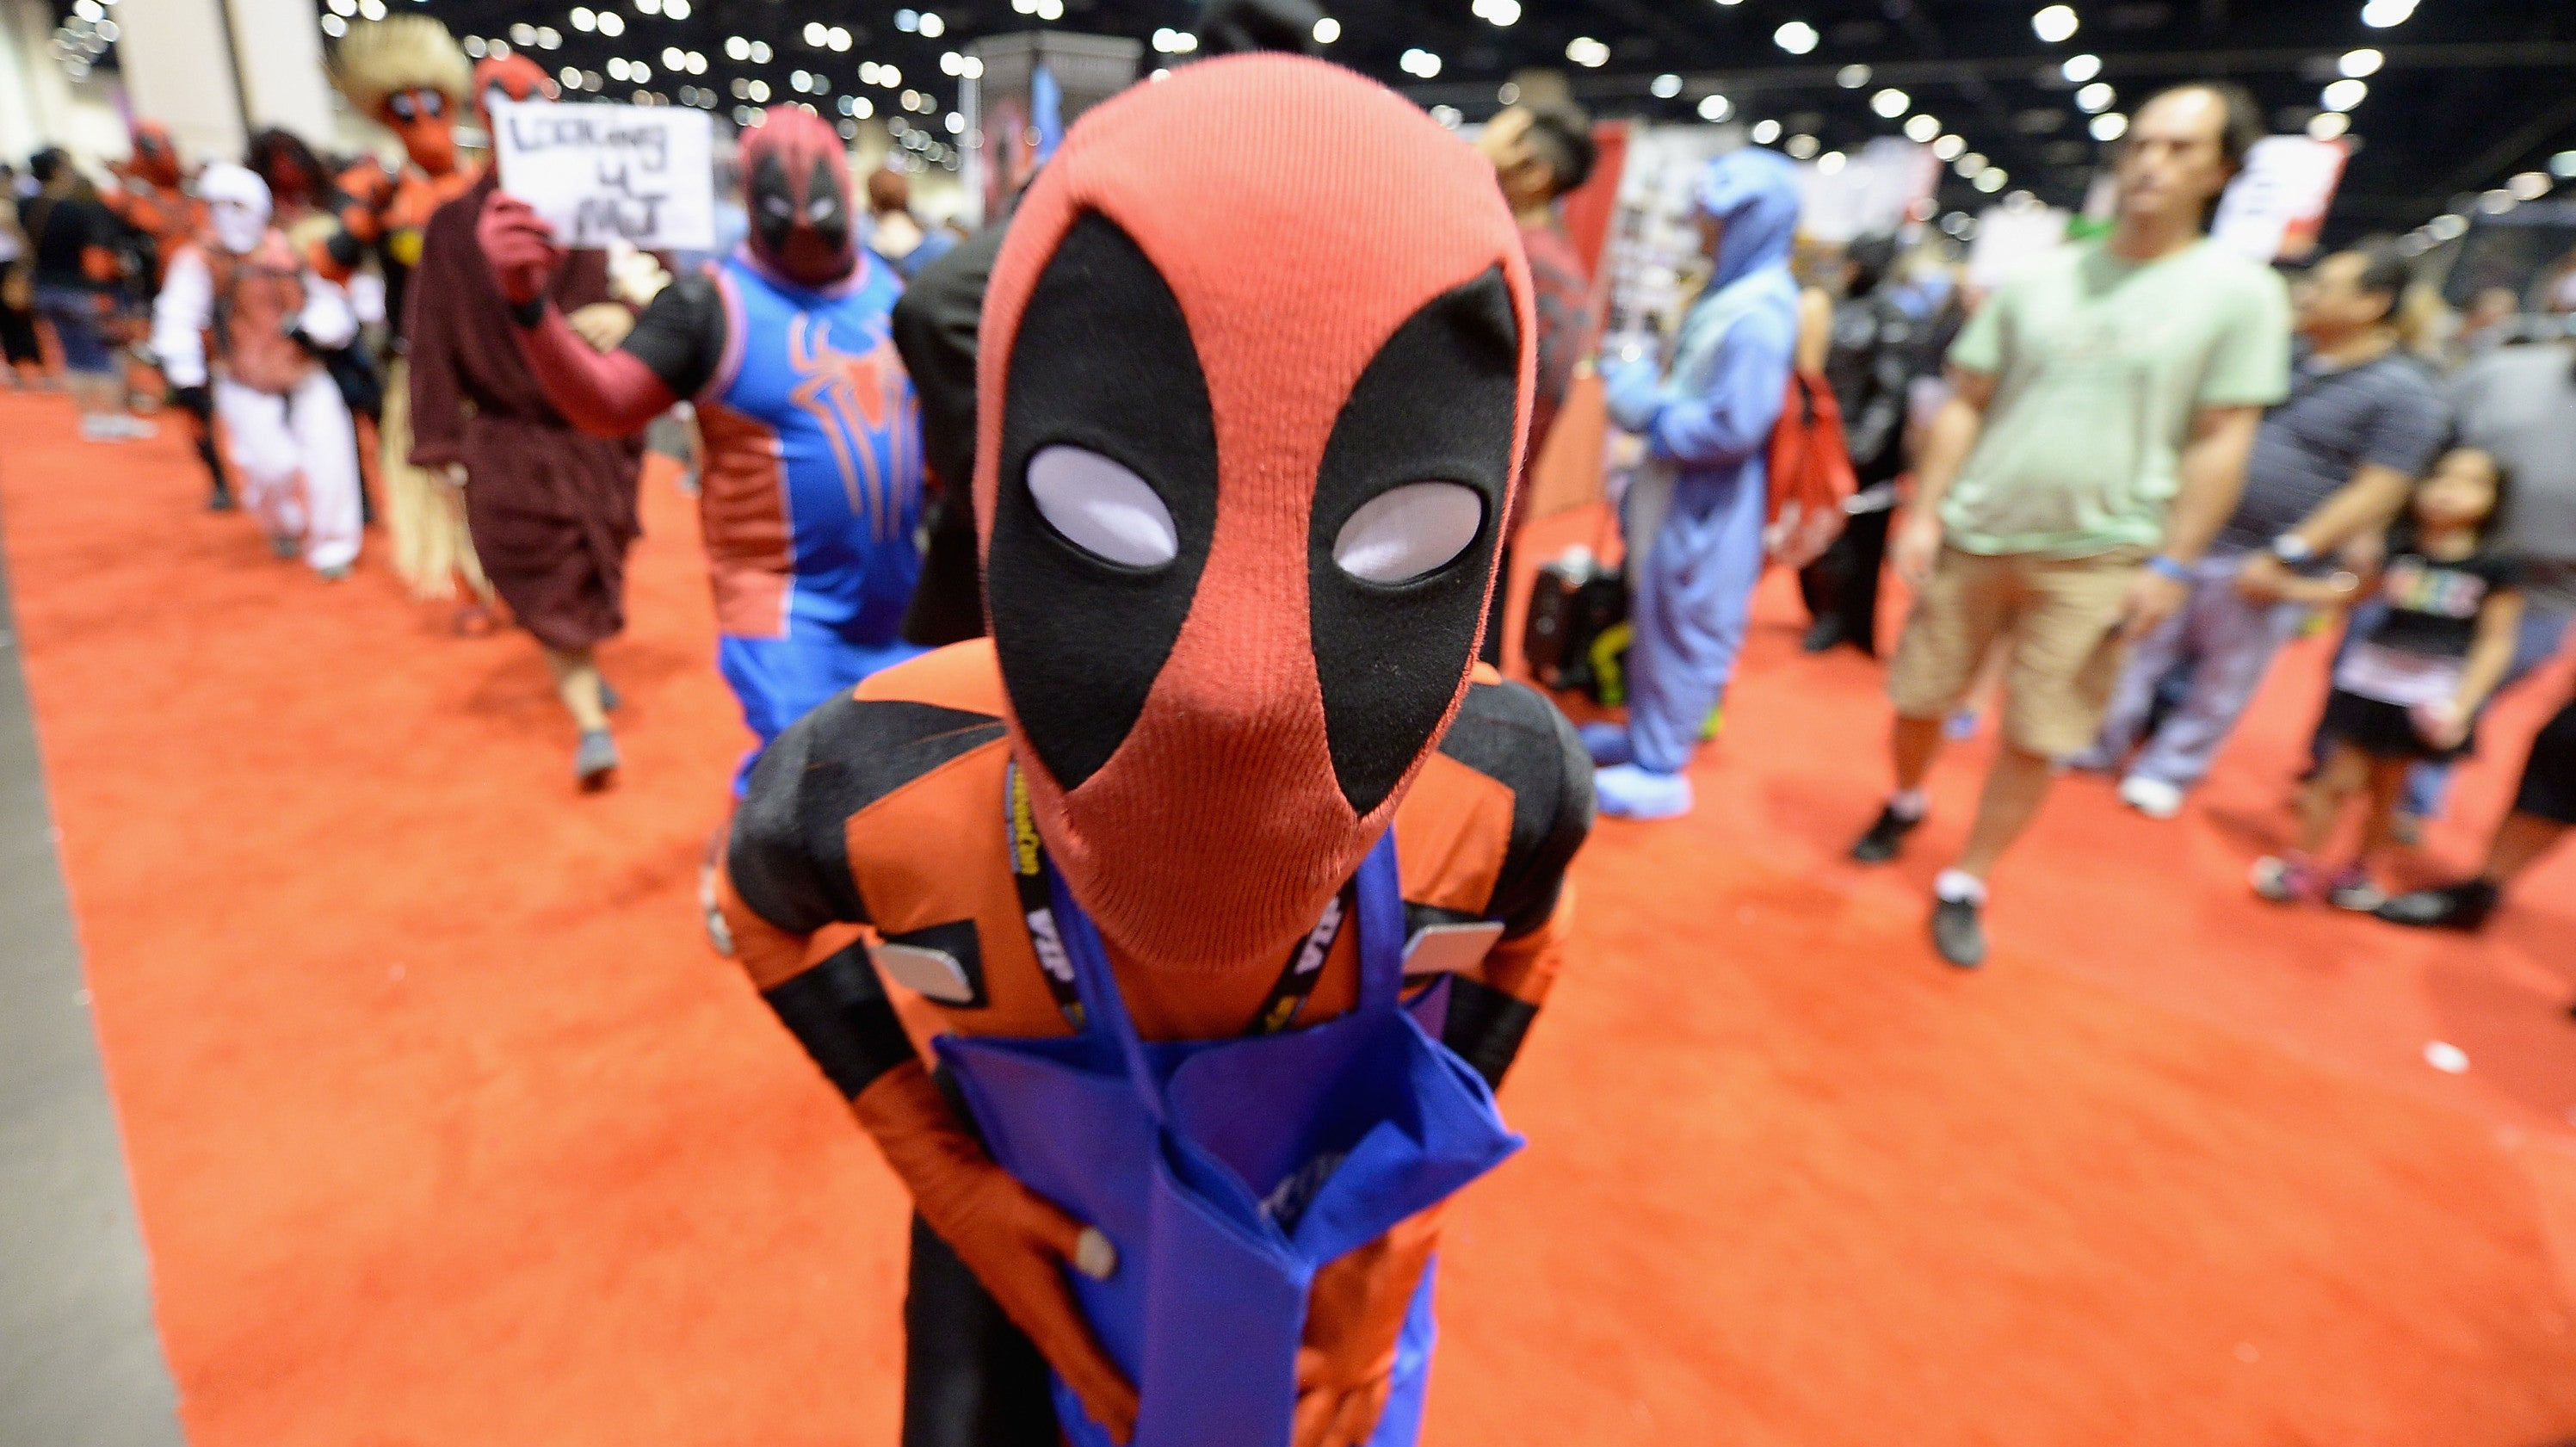 MegaCon Orlando Is On Hold Until 2021, But A Halloween Event Is Planned